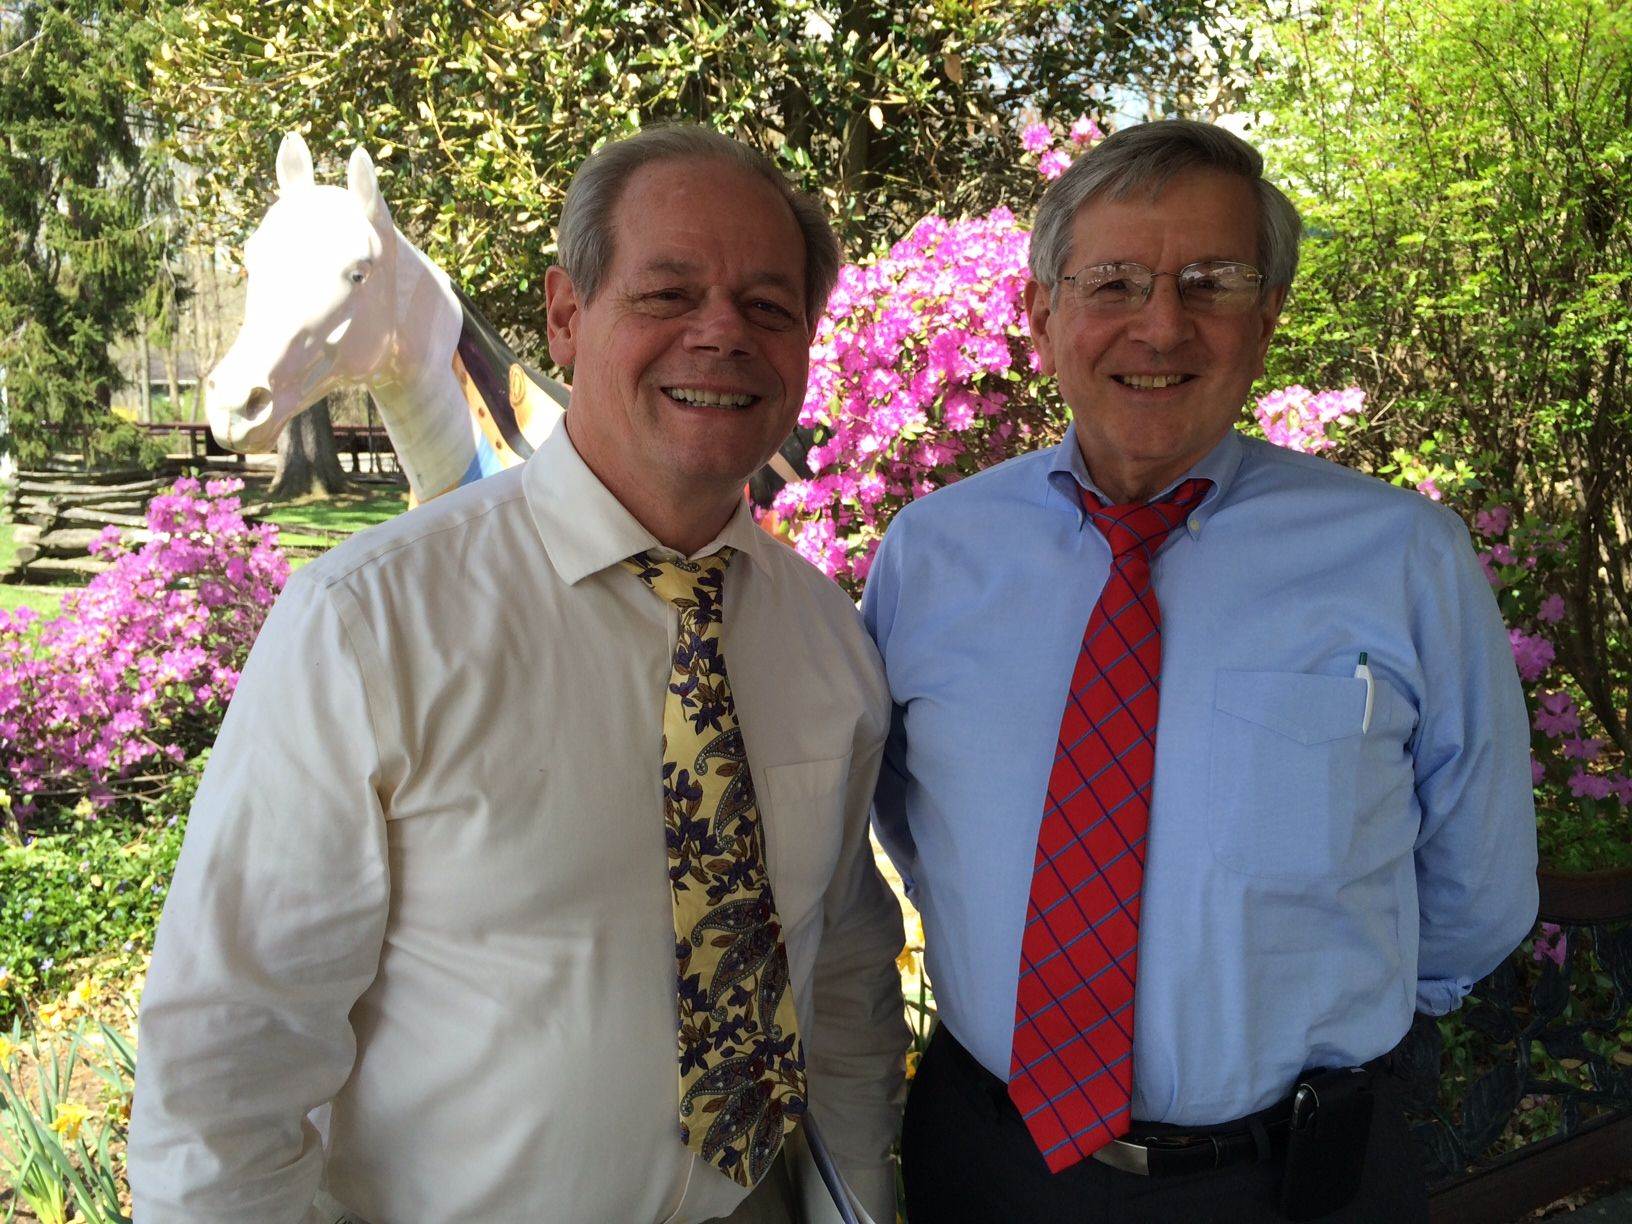 Chris Tarr '66 and Andy Shaw '66 met for lunch recently in Basking Ridge, New Jersey at the Olde Mill Inn.